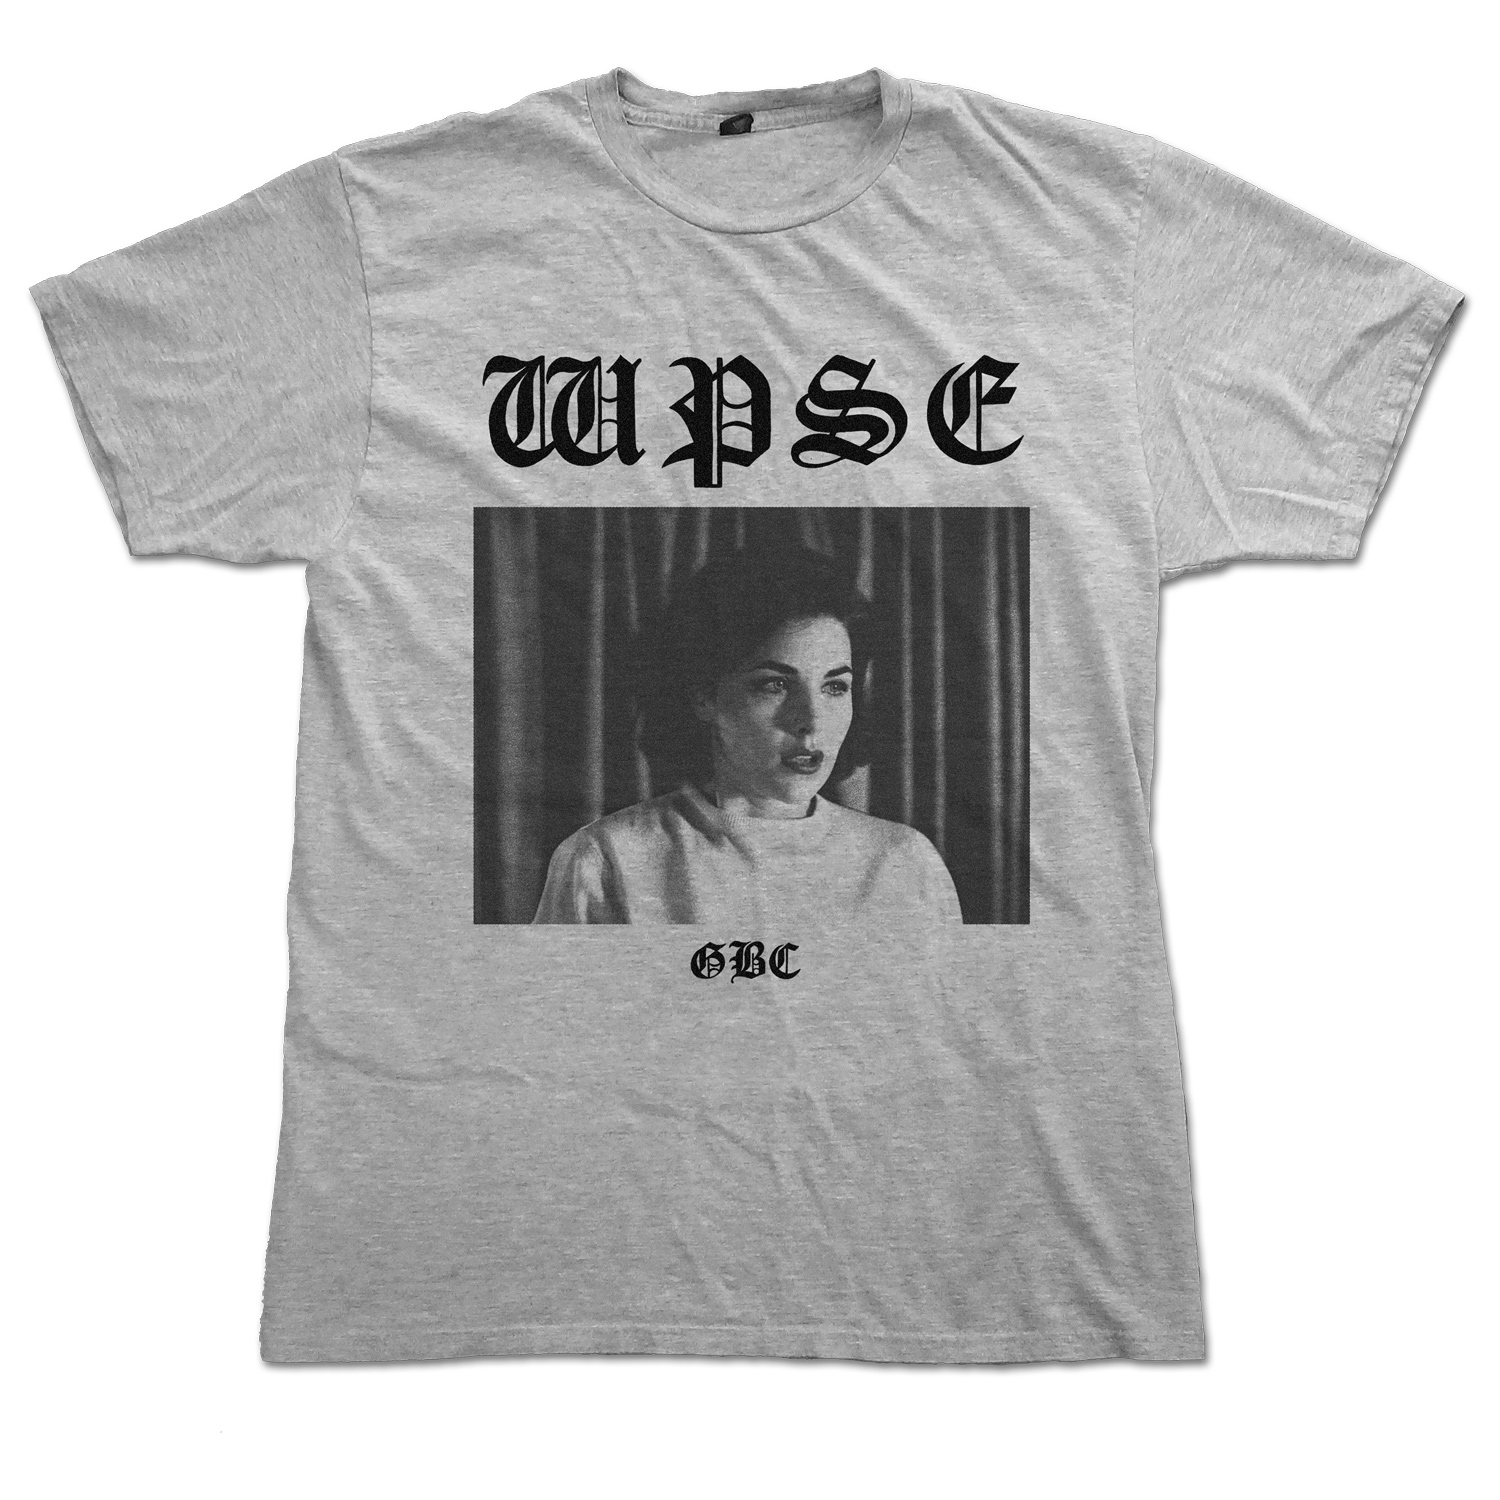 Audrey H T Shirt Grey Wicca Phase Springs Eternal Merch Store